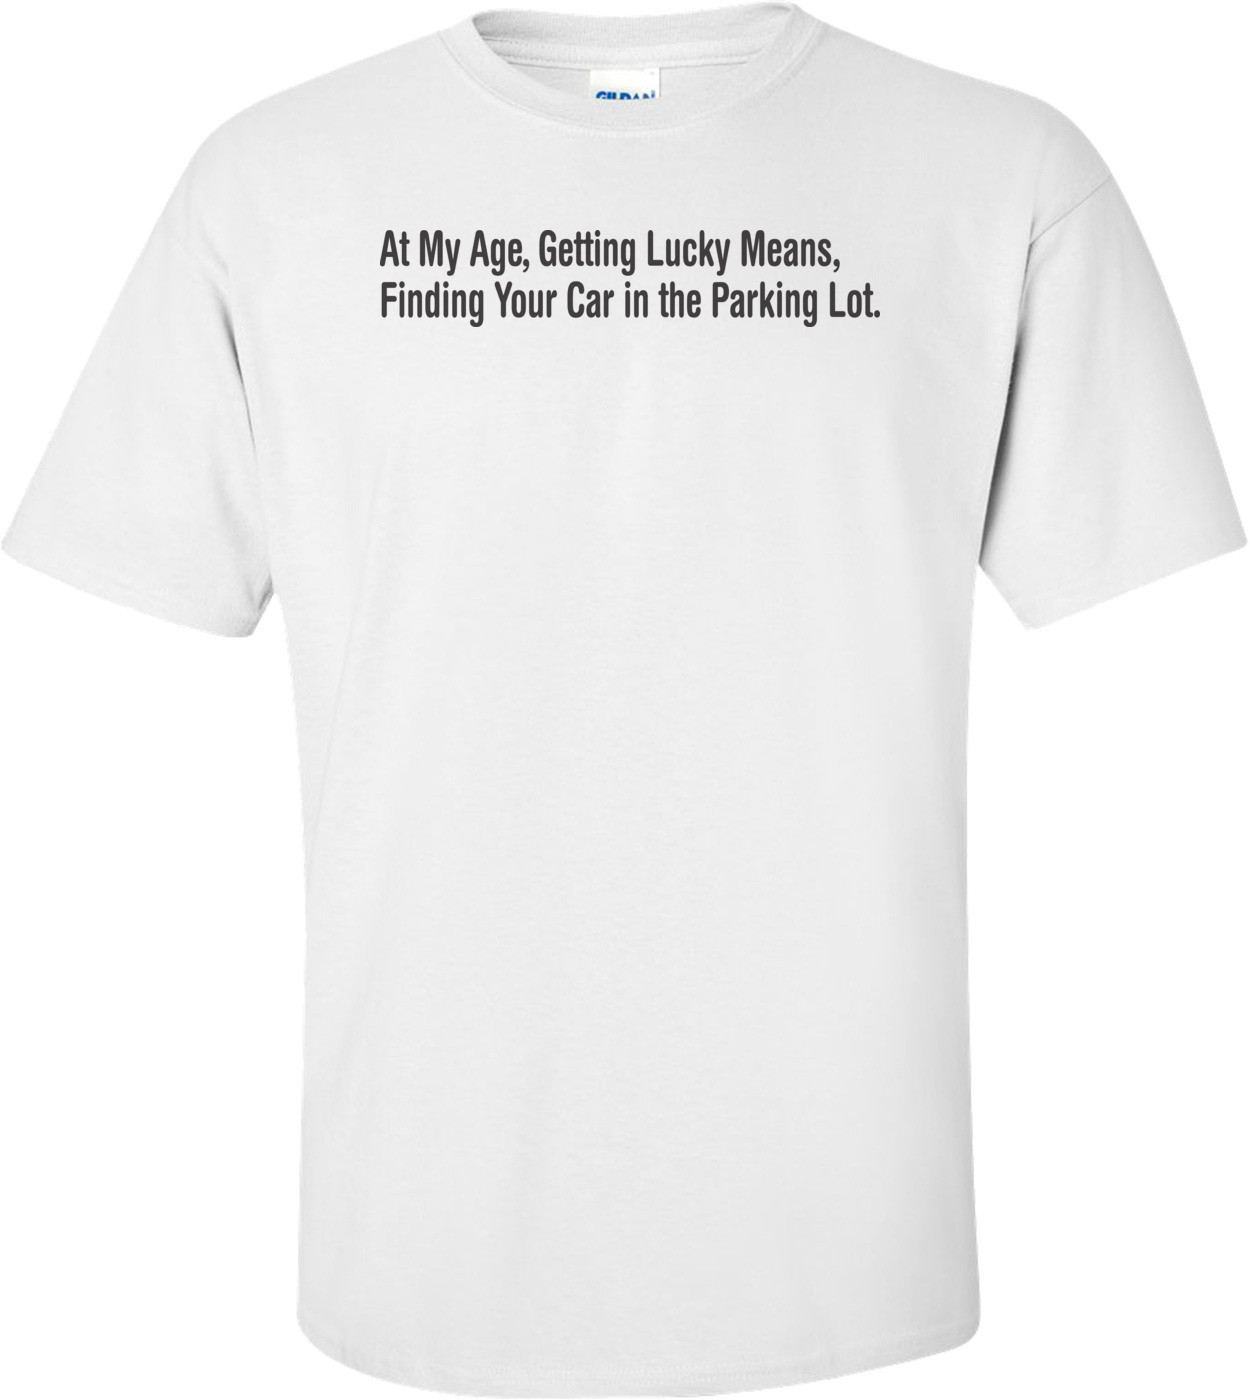 Getting Lucky At My Age Means Finding Your Car In The Parking Lot Funny T-shirt